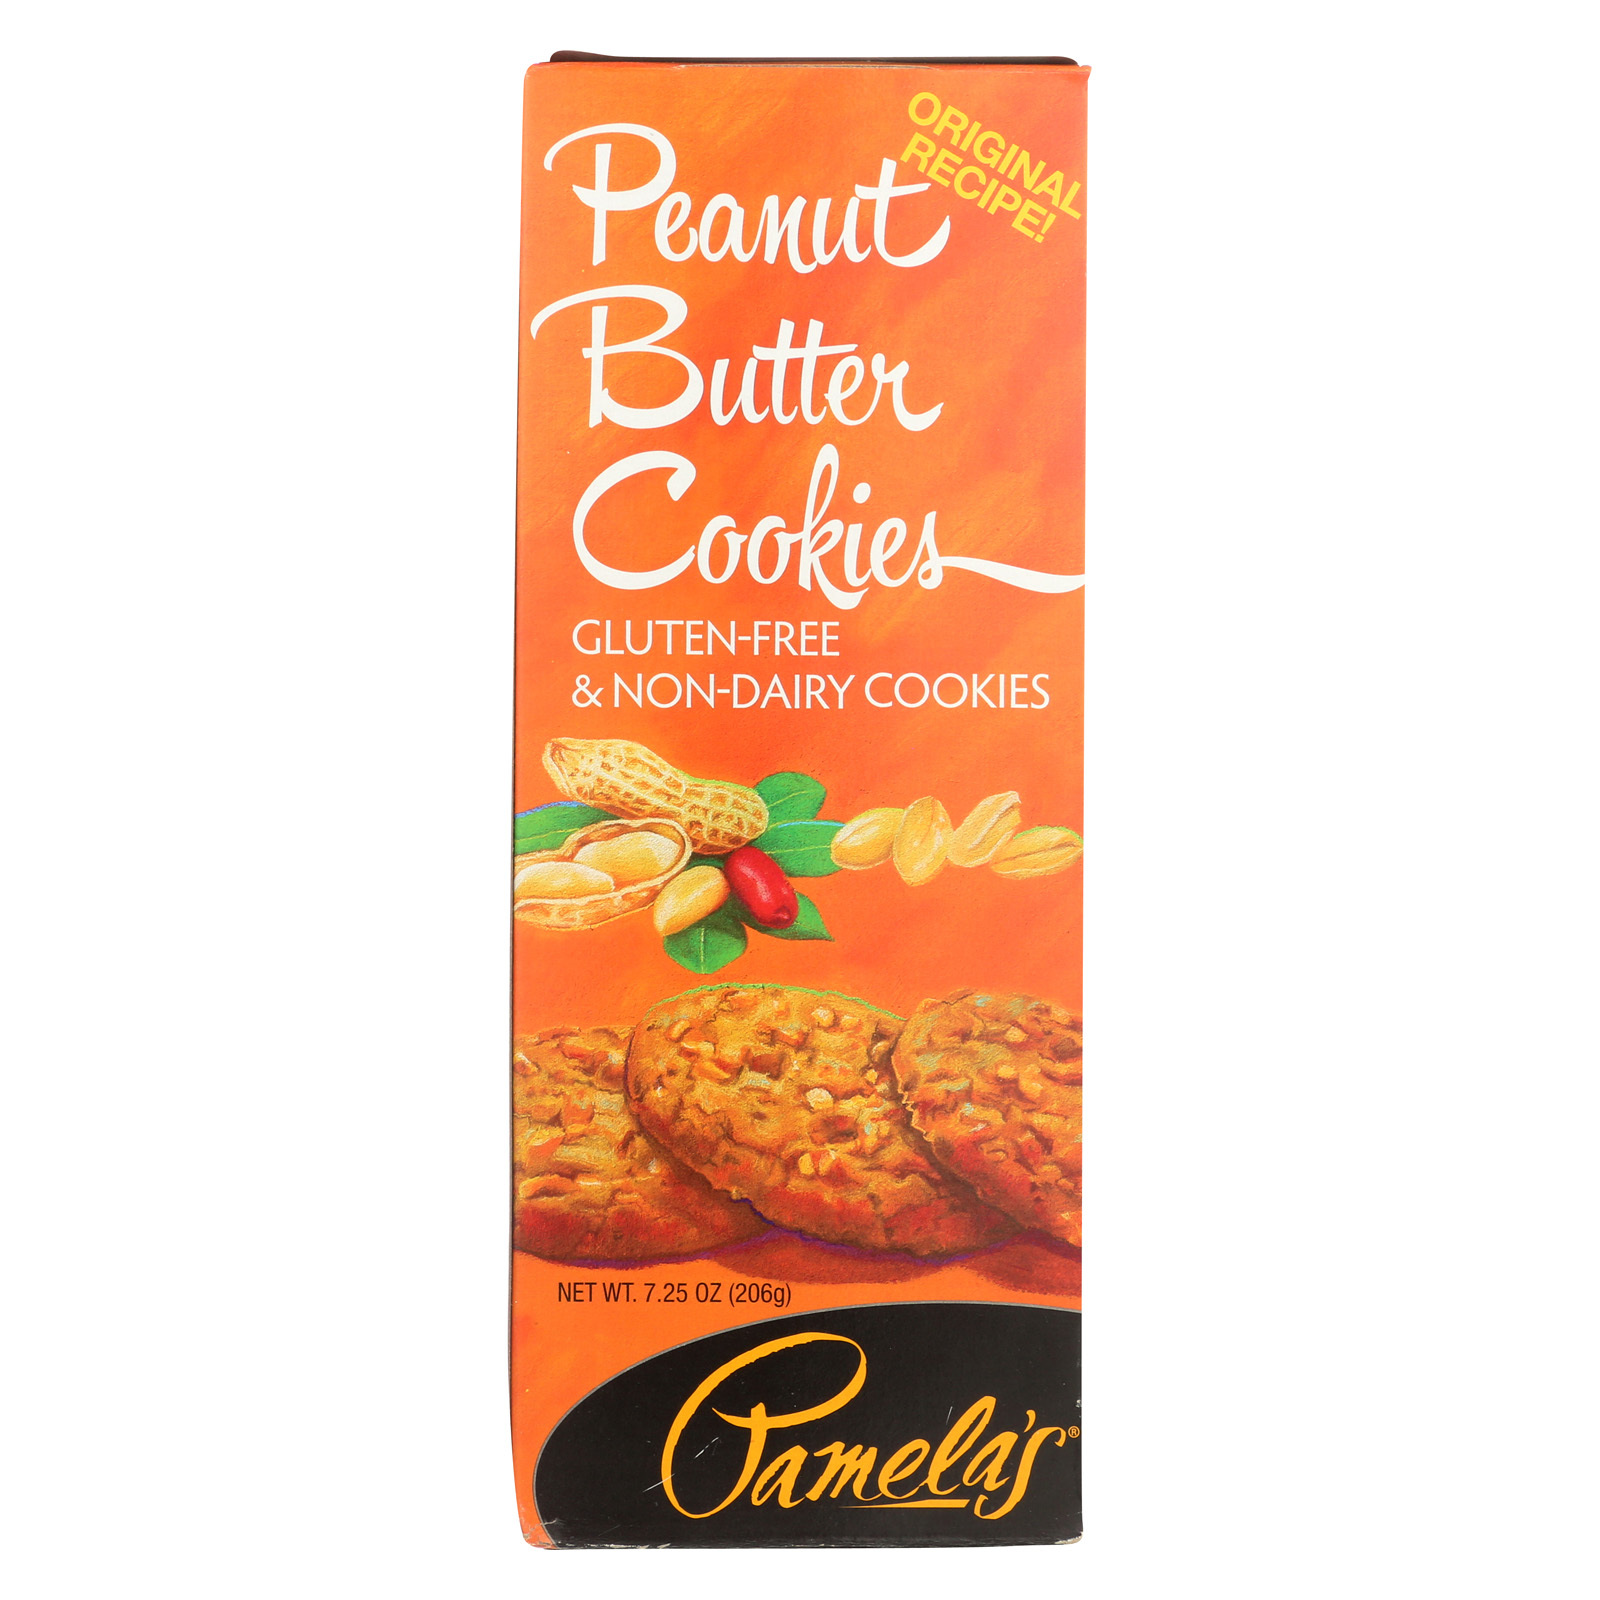 Pamela's Products Wheat Free Gluten Free Butter Cookies - Peanut - Case of 6 - 7.25 oz.